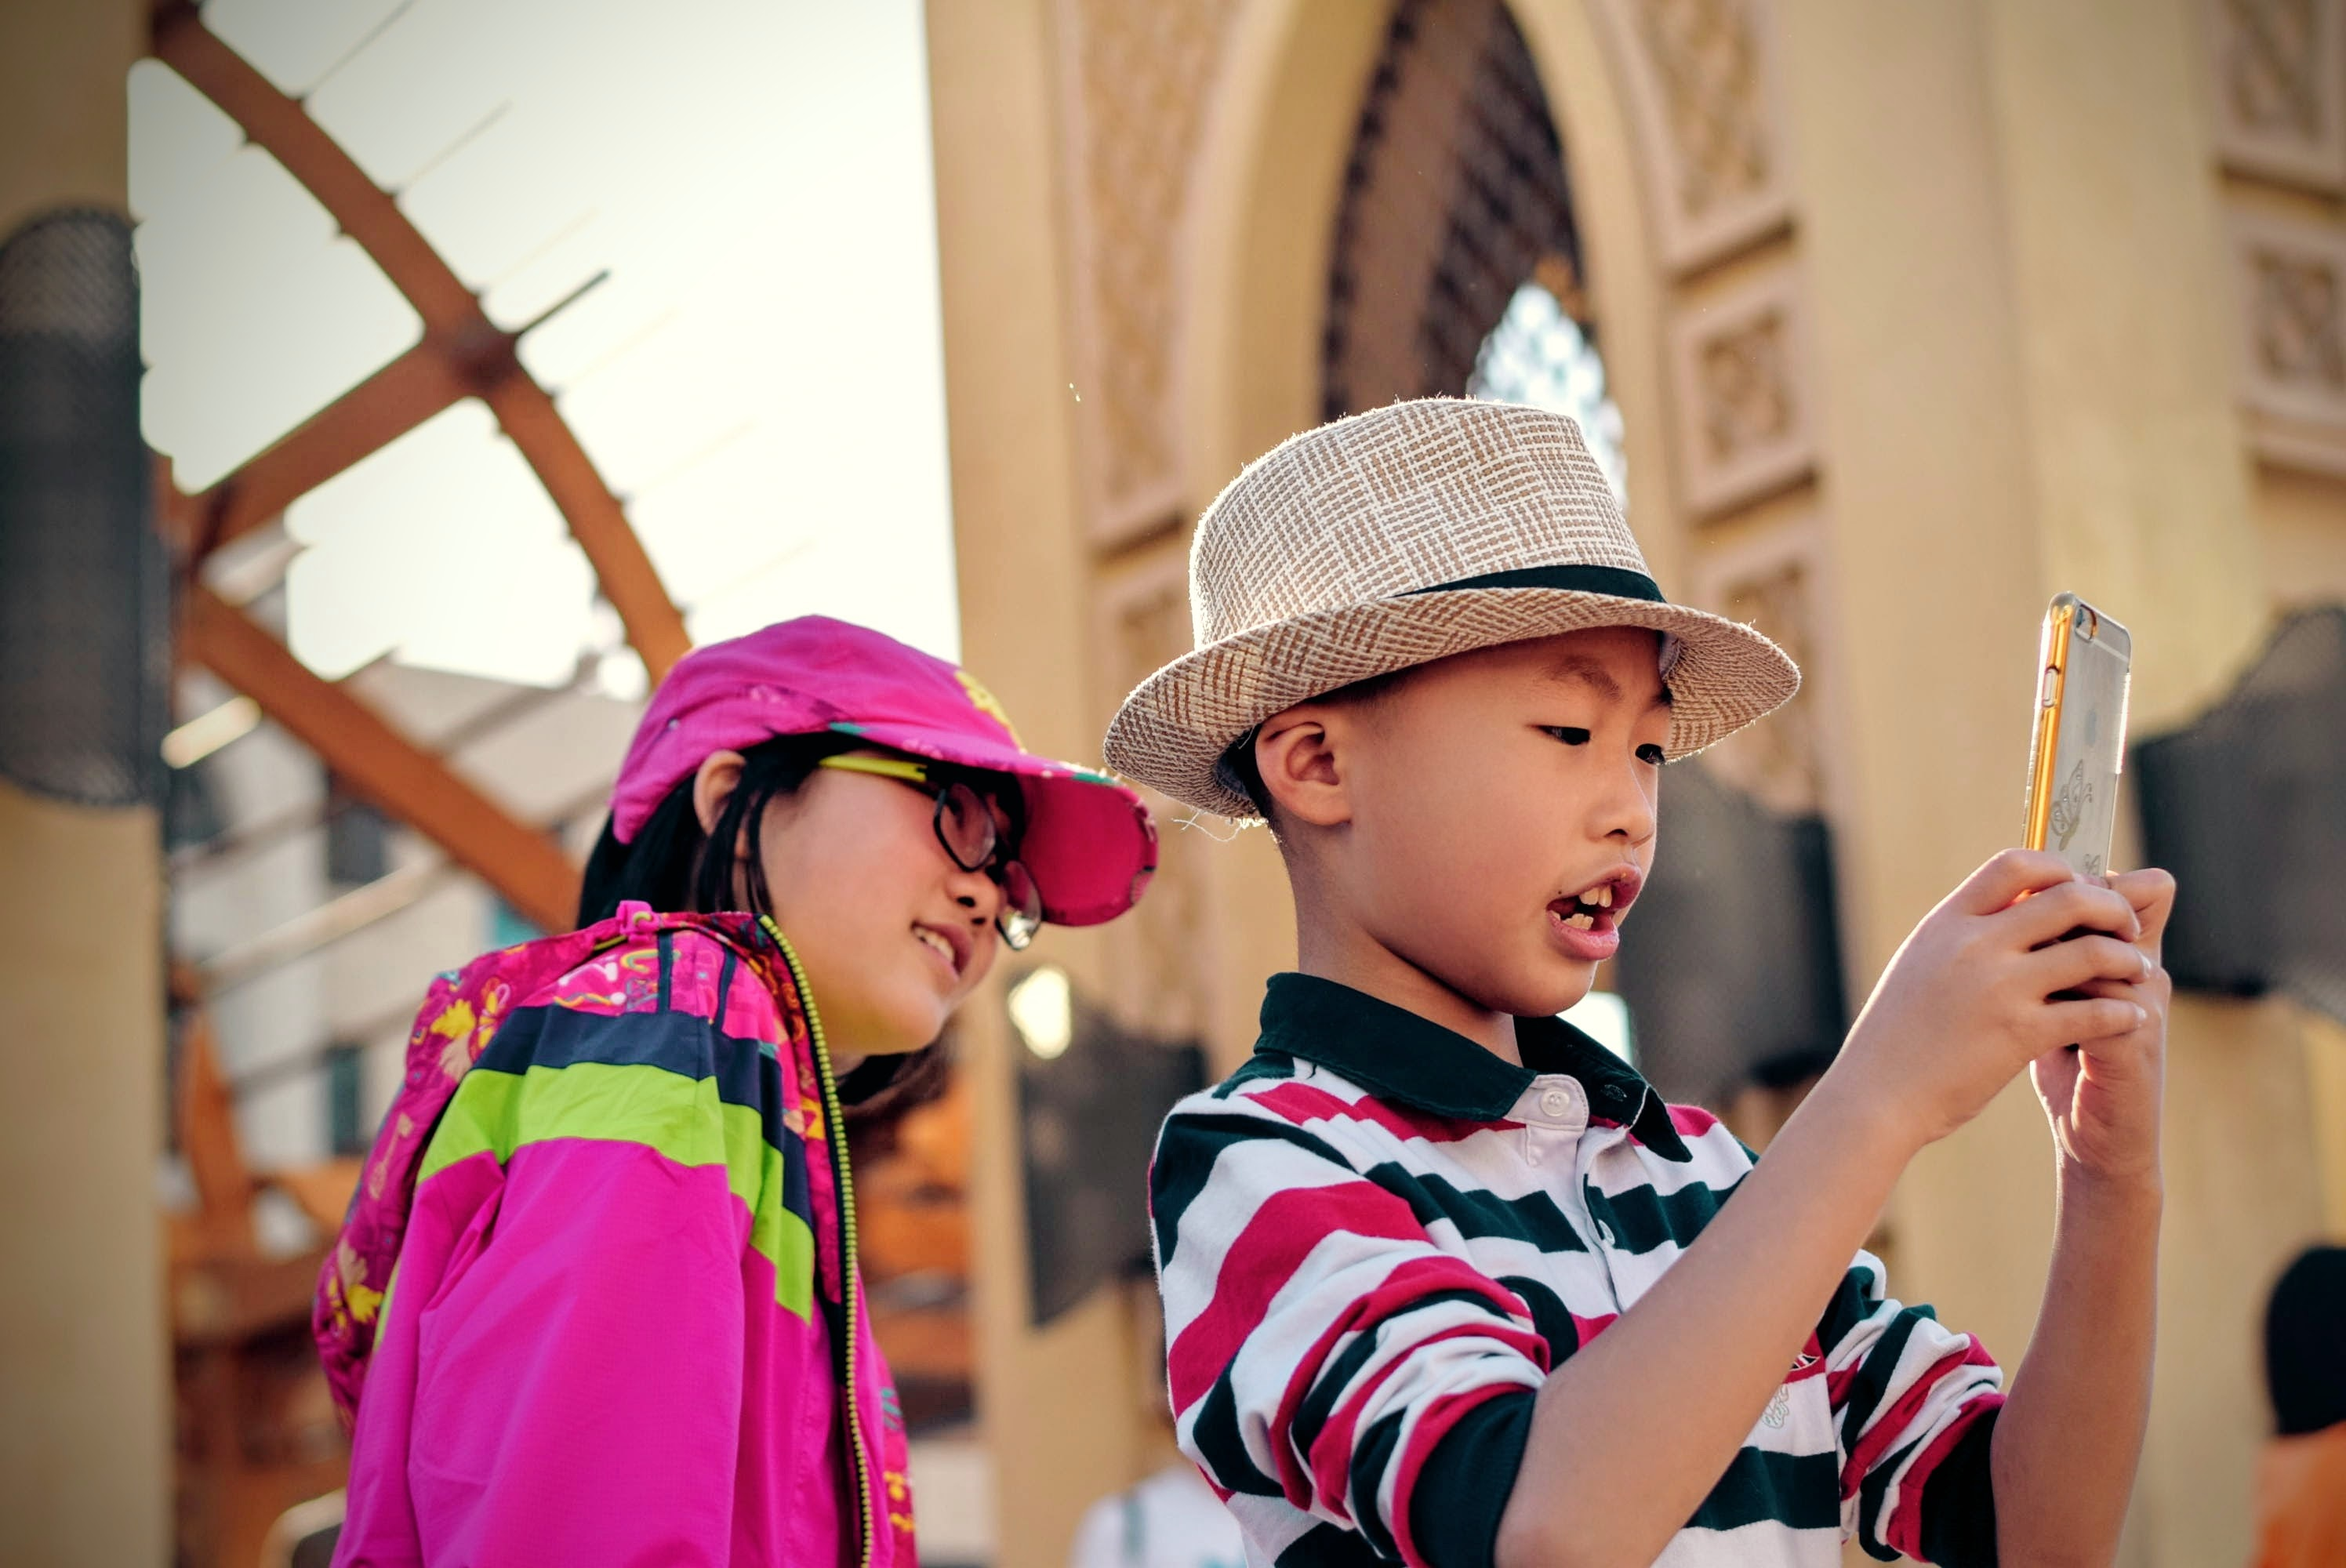 A photo of two children taking selfies on a smartphone